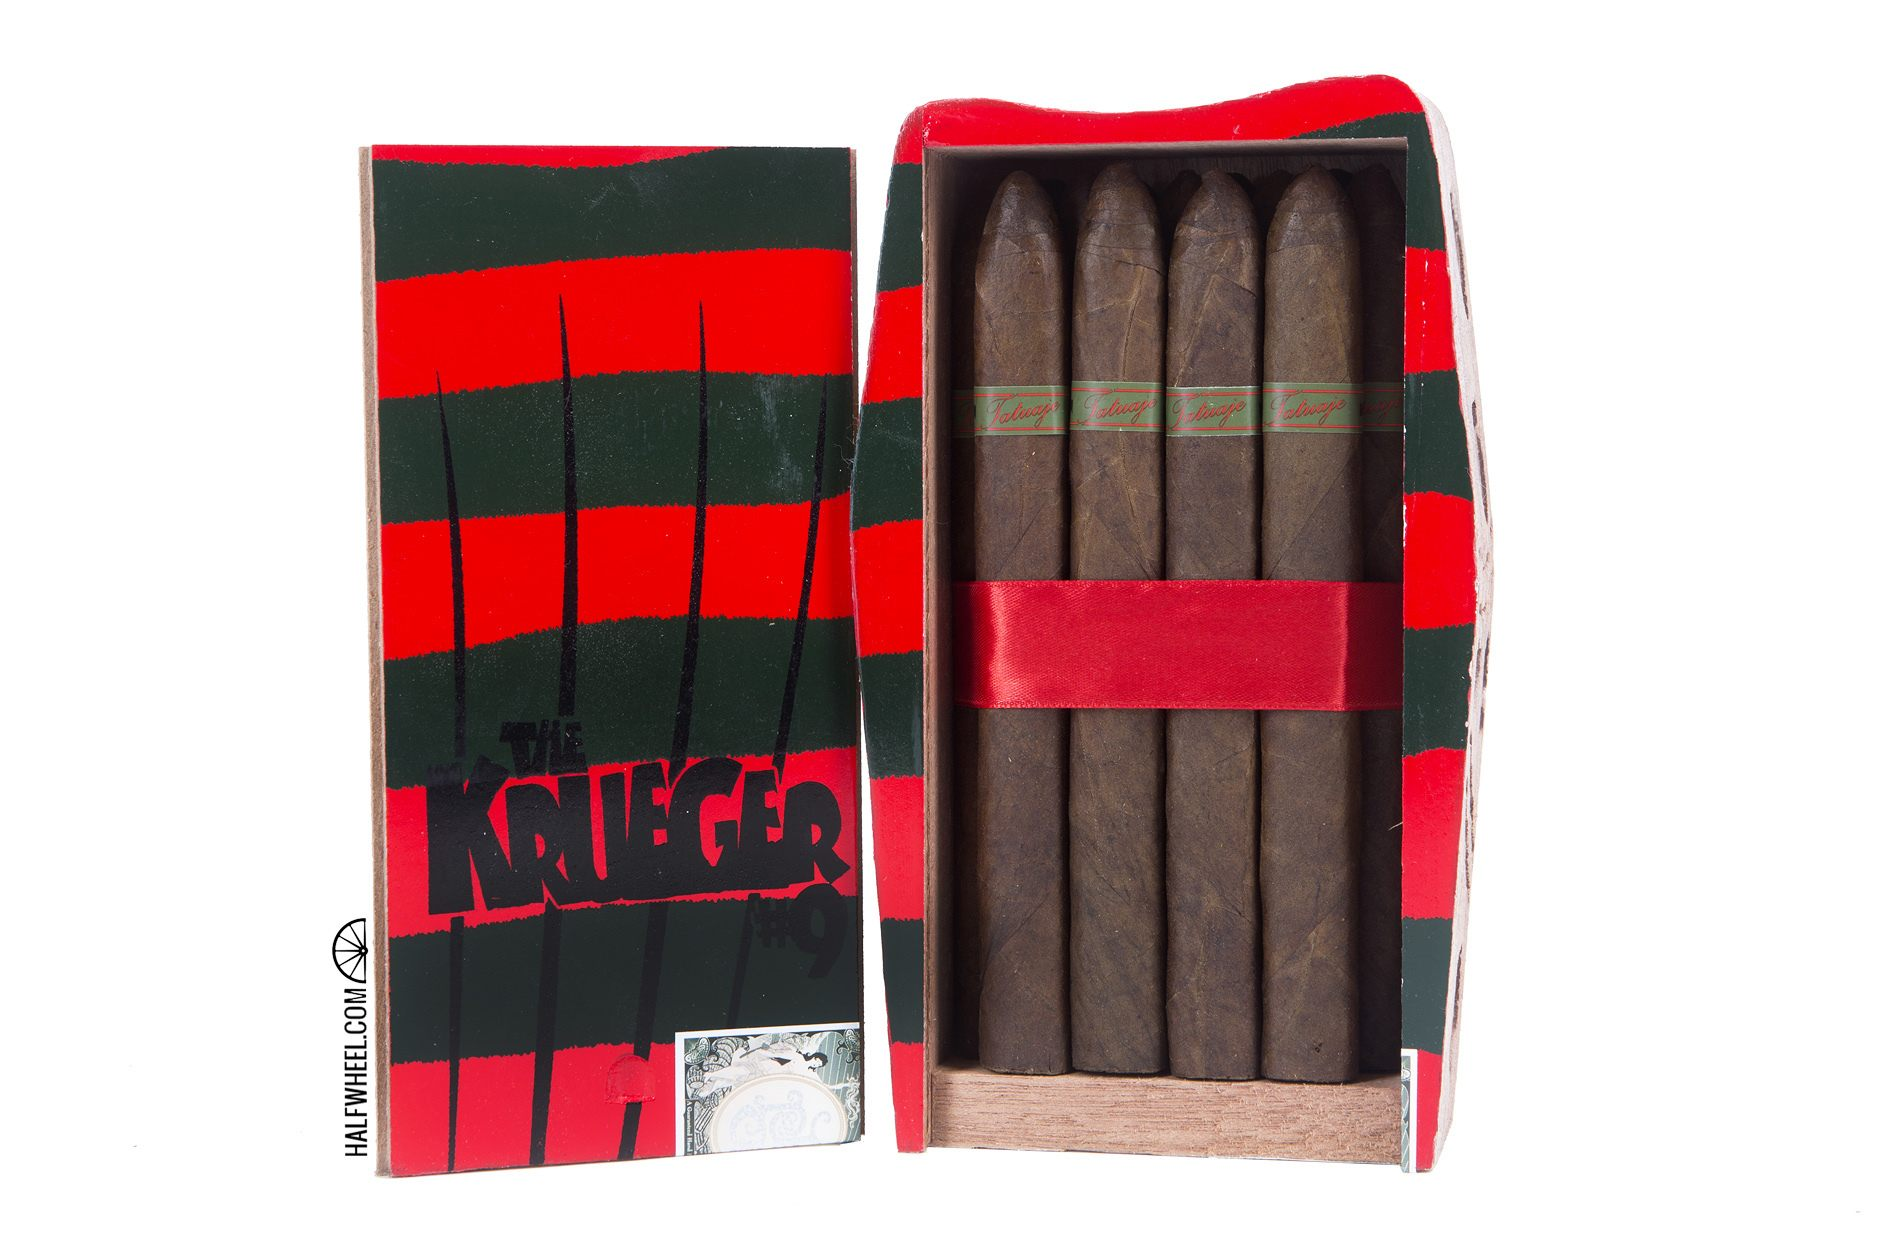 tatuaje-the-krueger-dress-box-4